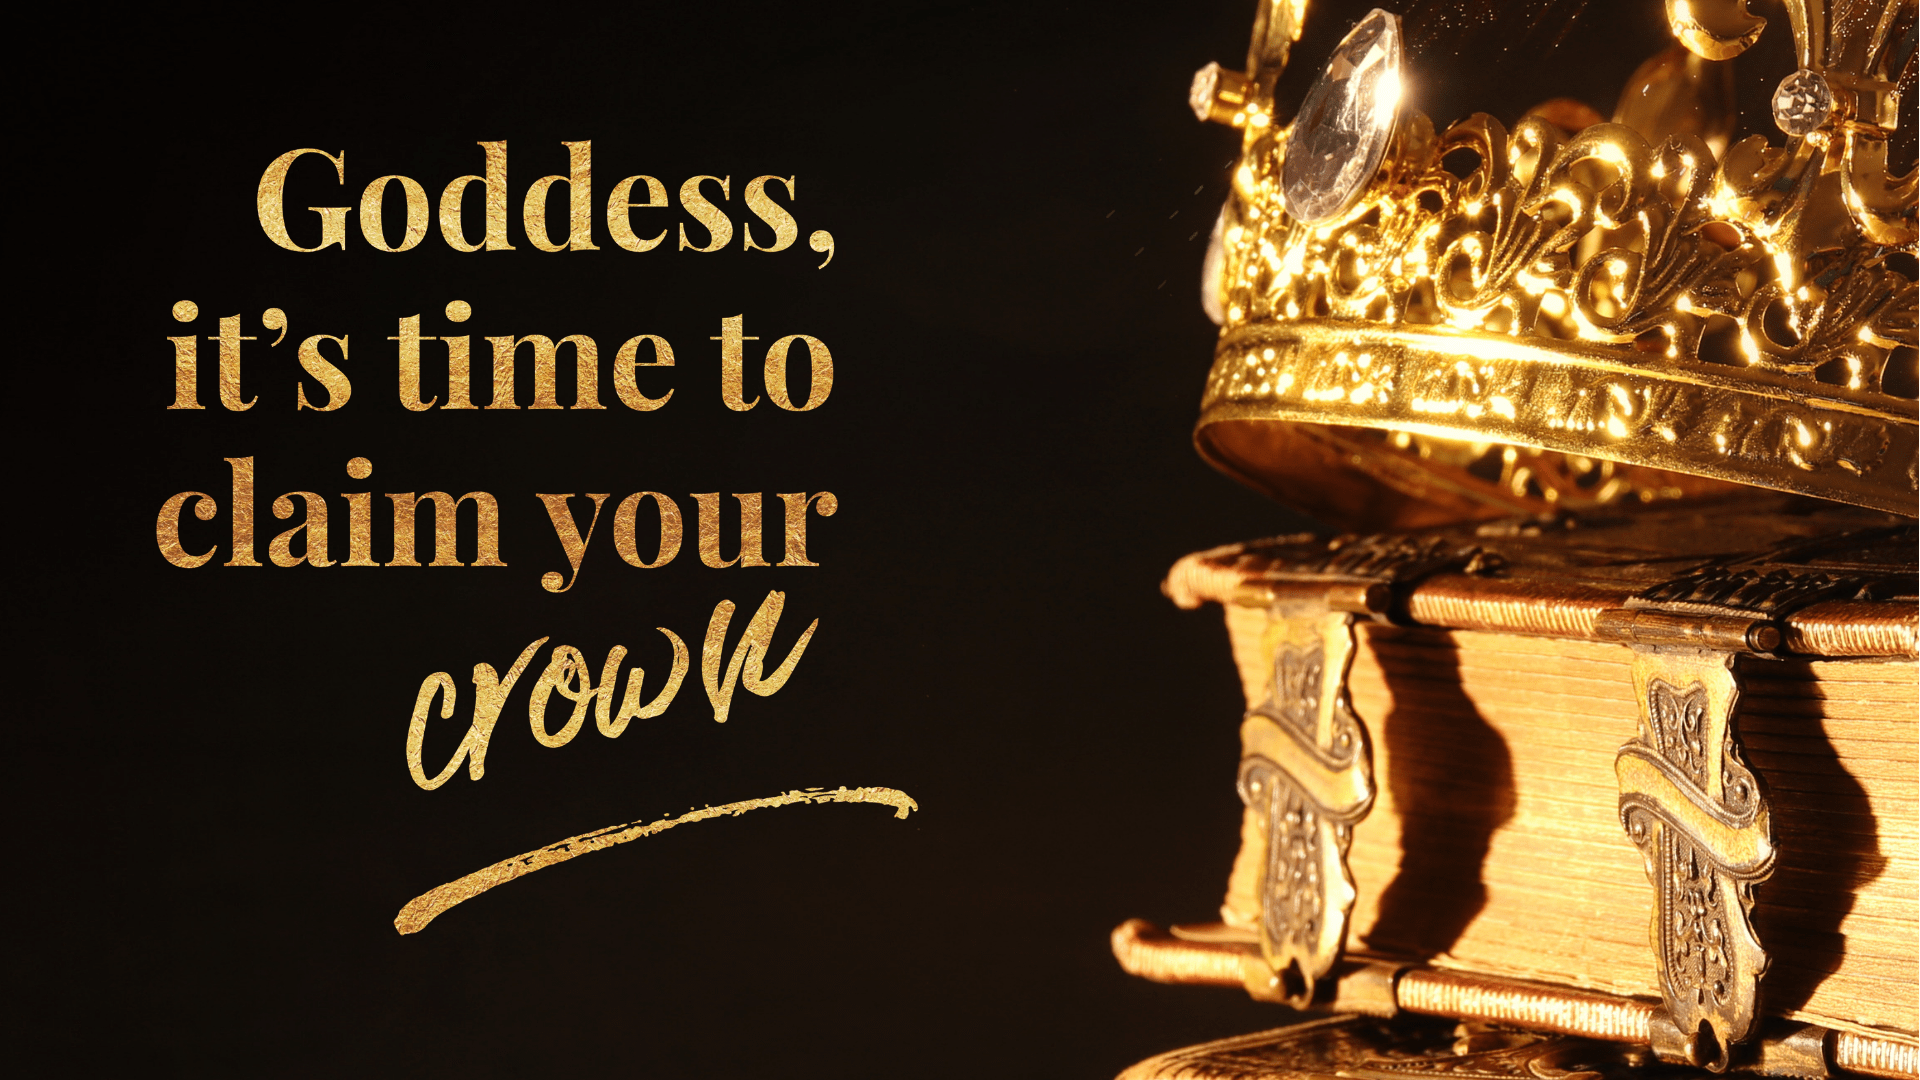 Goddess, it's time to claim your crown and step into sacred physicality